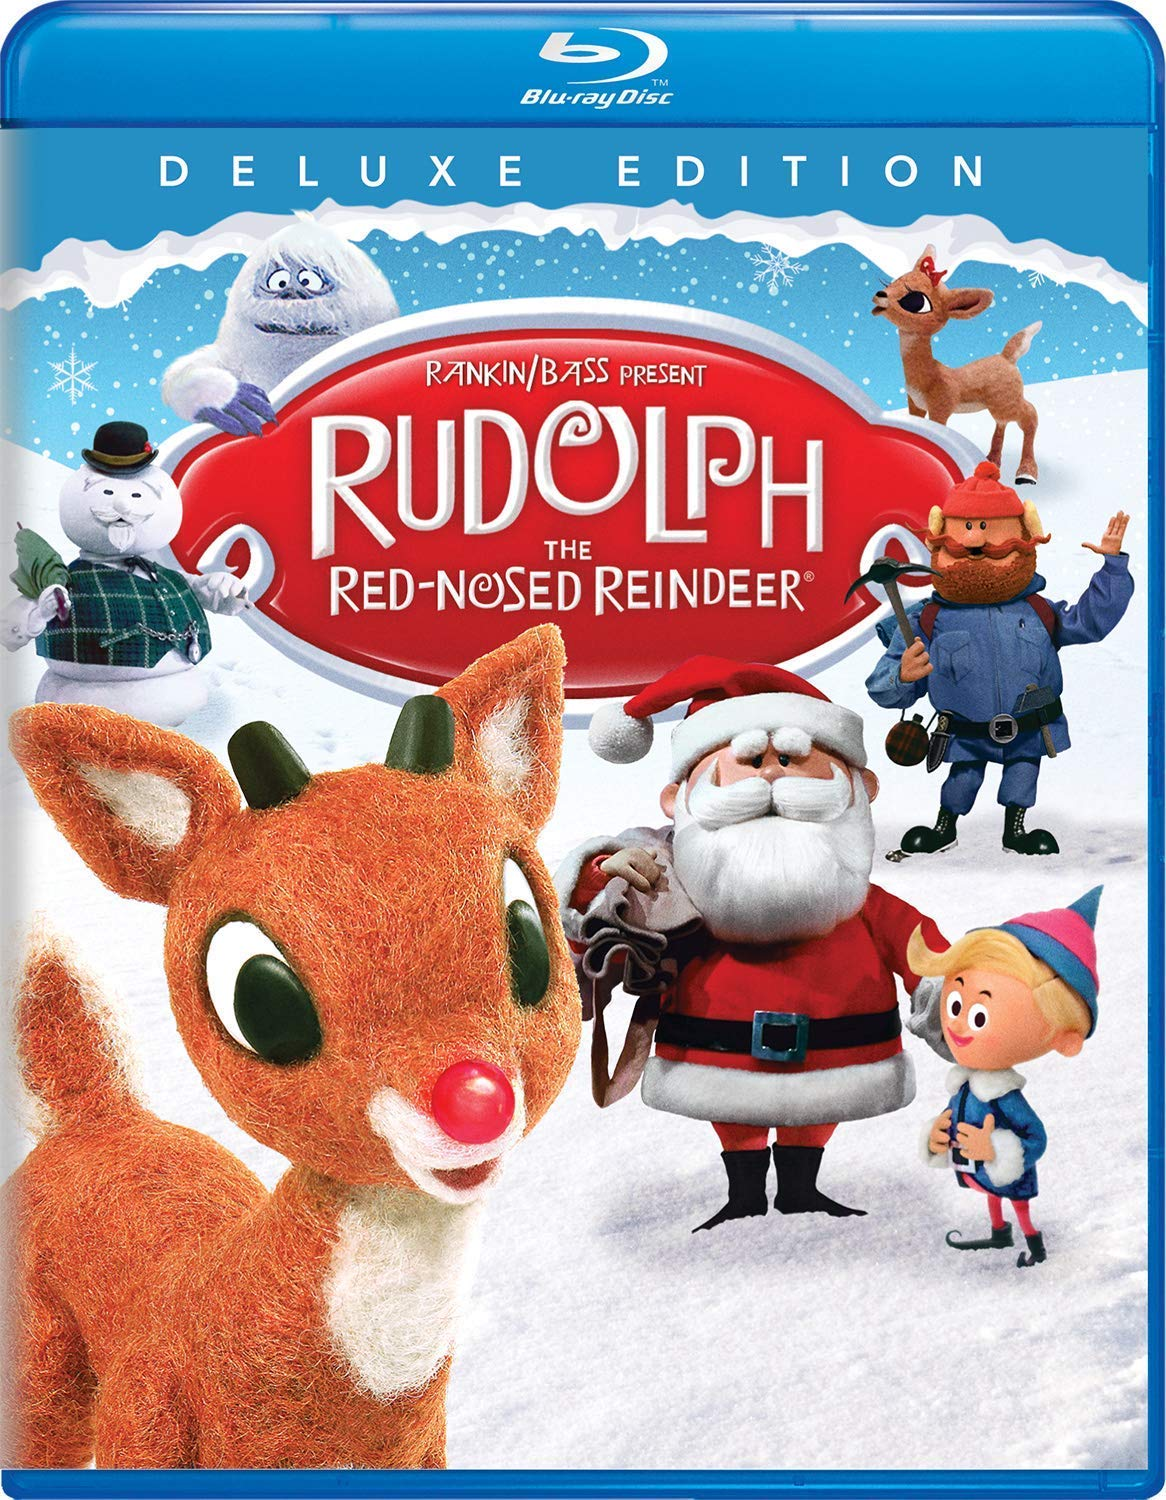 Rudolph Christmas Special.Amazon Com Rudolph The Red Nosed Reindeer Blu Ray Burl